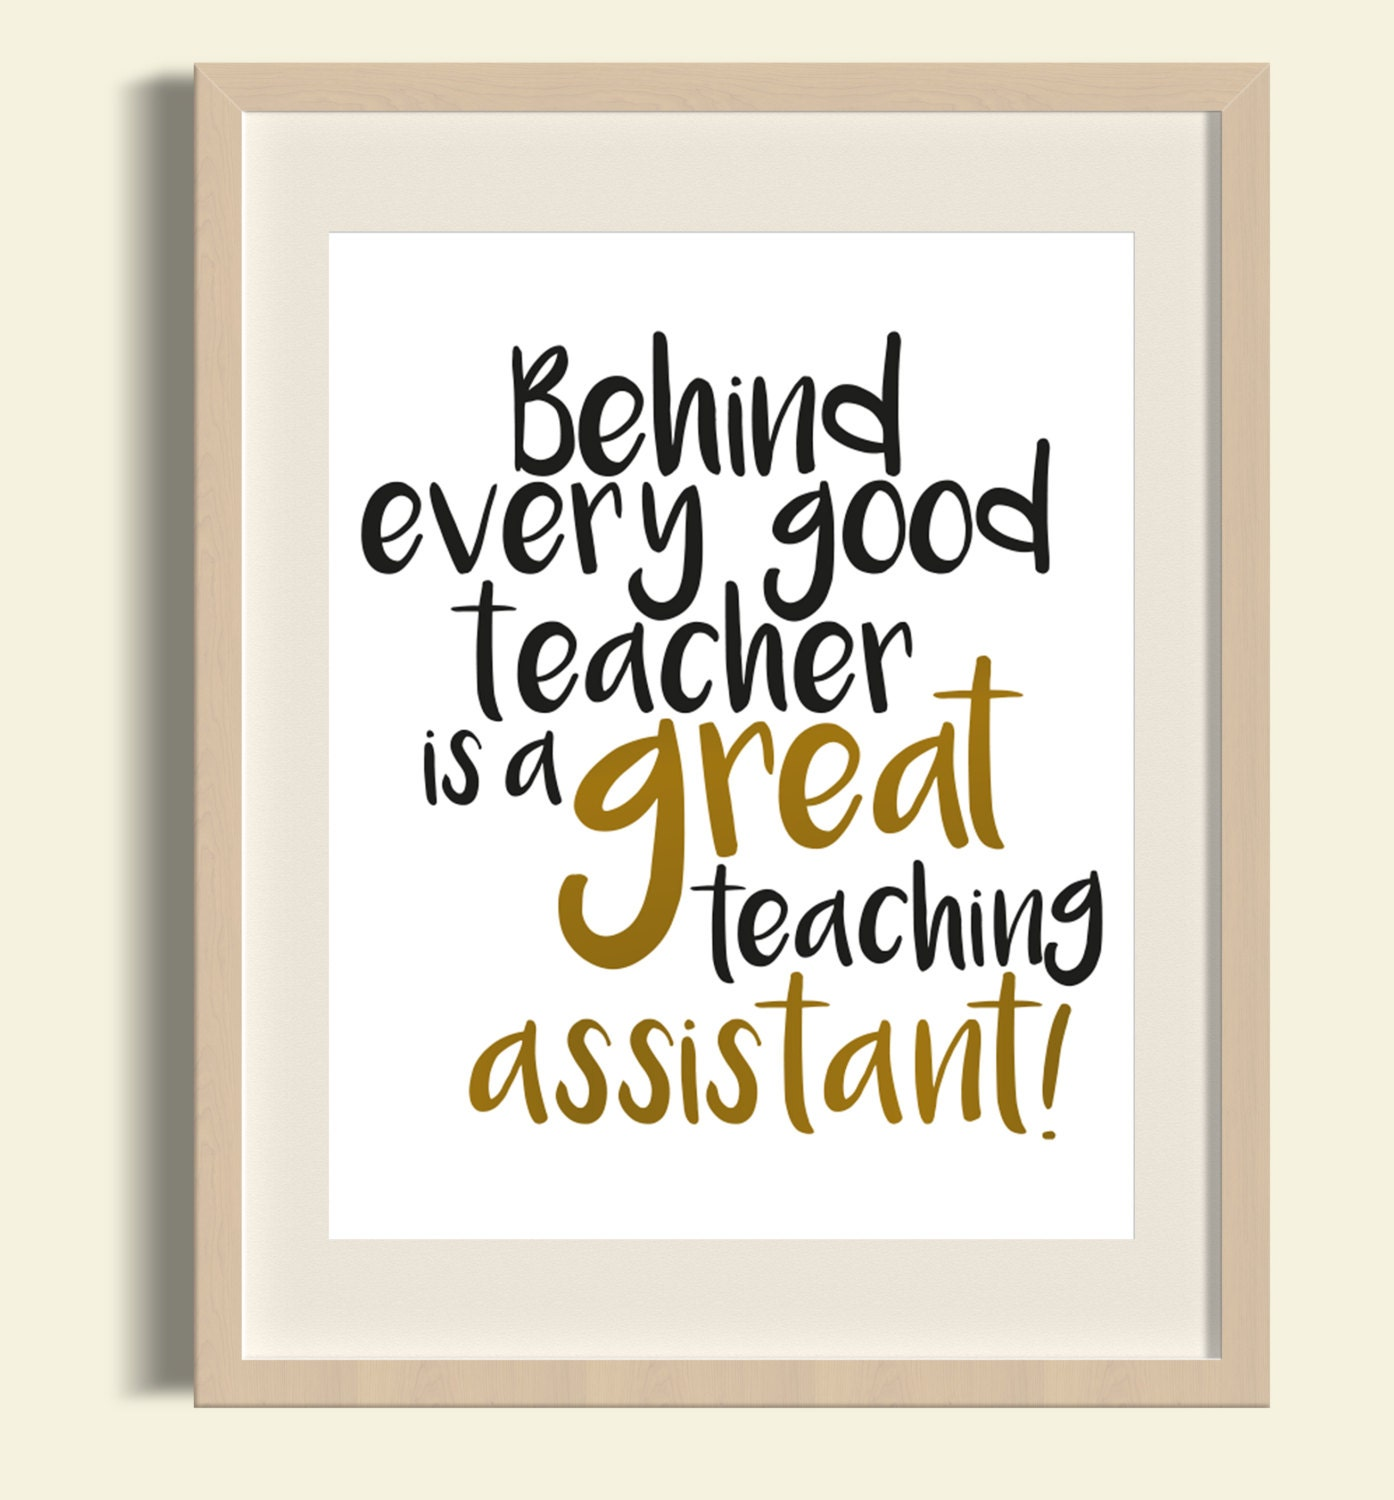 Behind every good teacher is a great teaching assistant